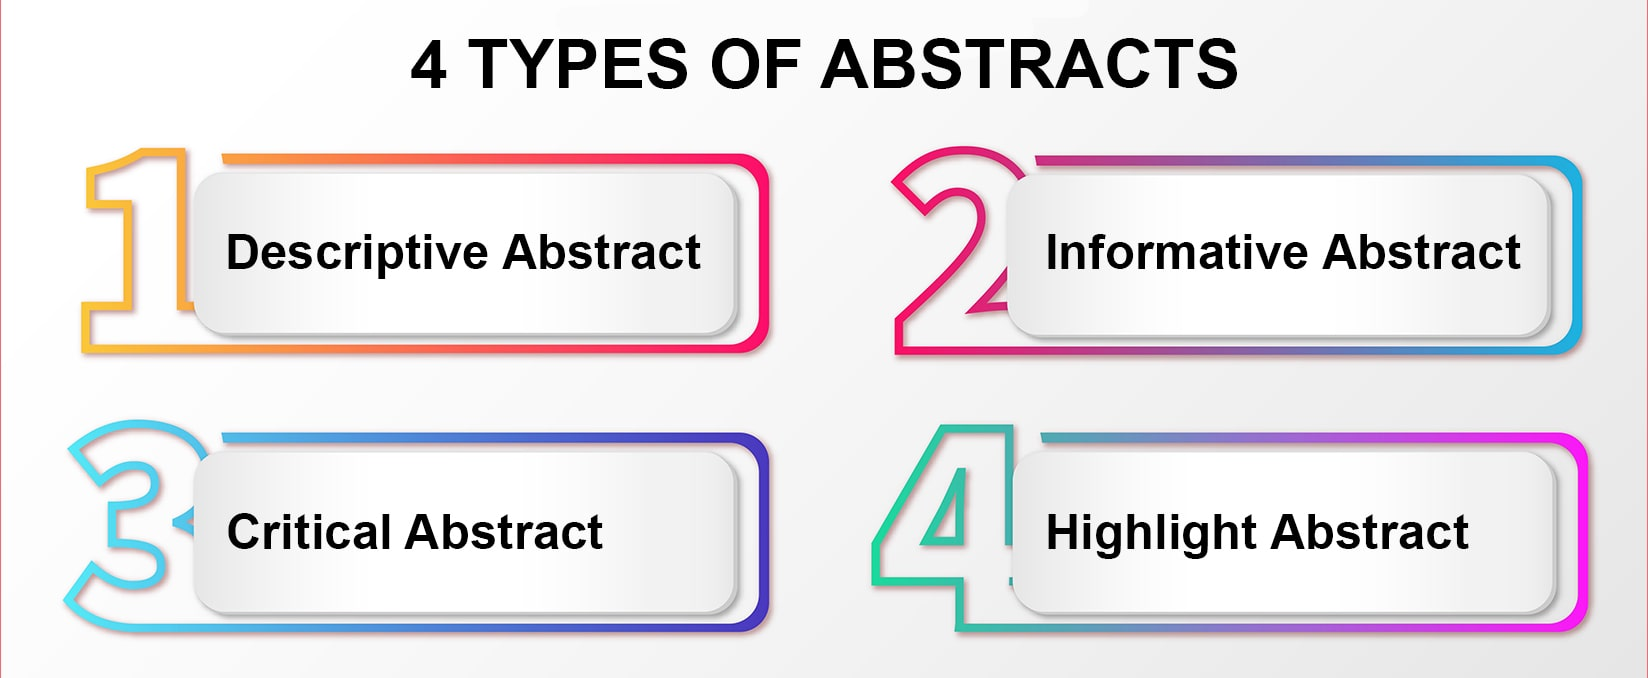 4 Types of Abstracts